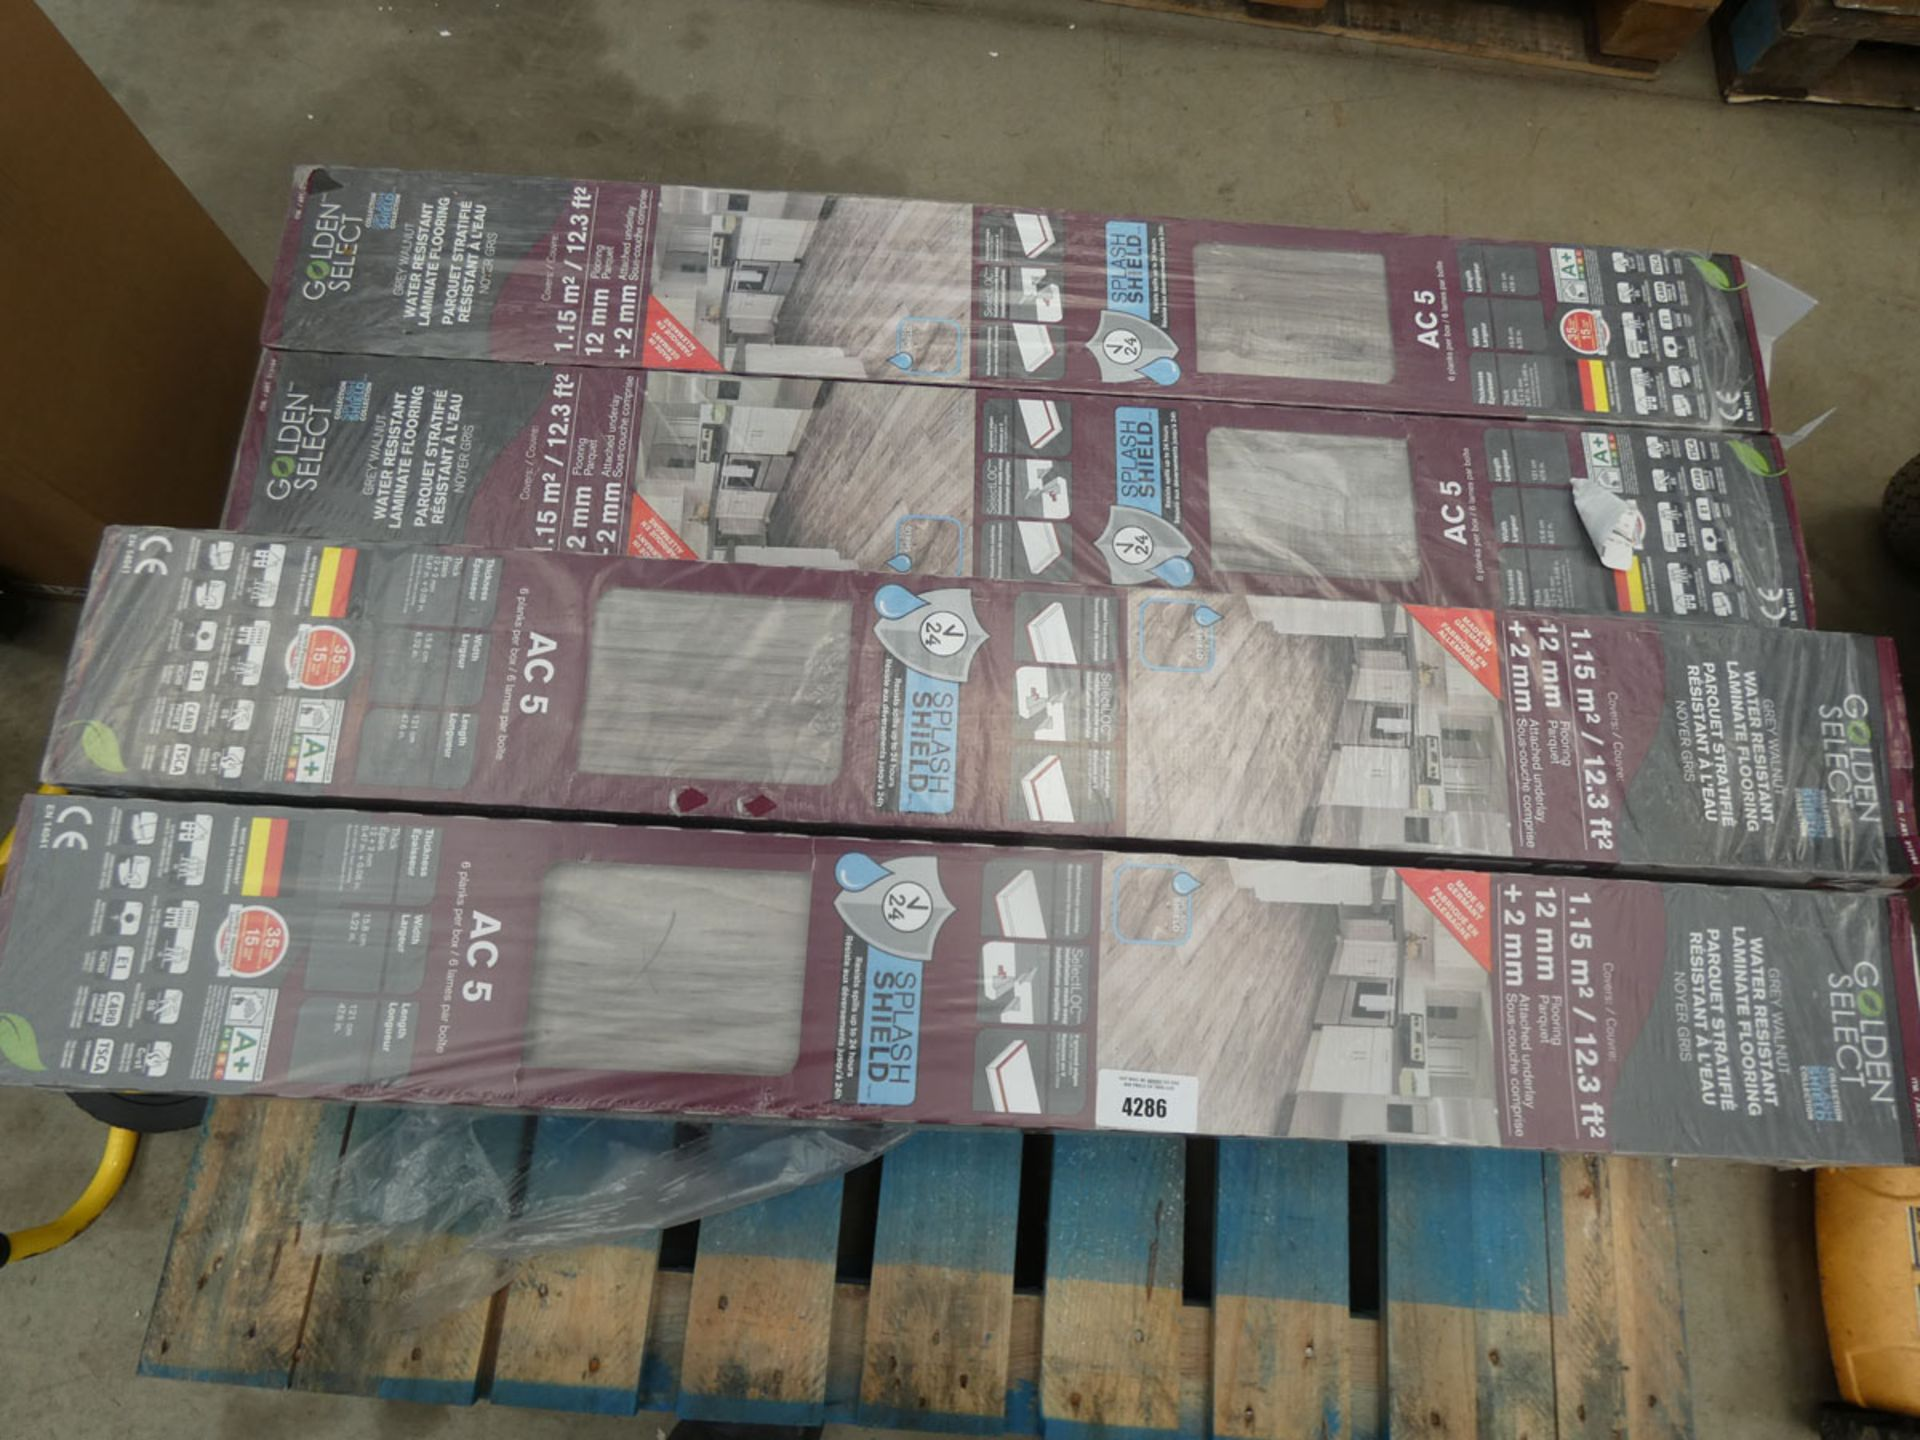 9 packs of Golden Select grey walnut colour laminate flooring Possibly faulty